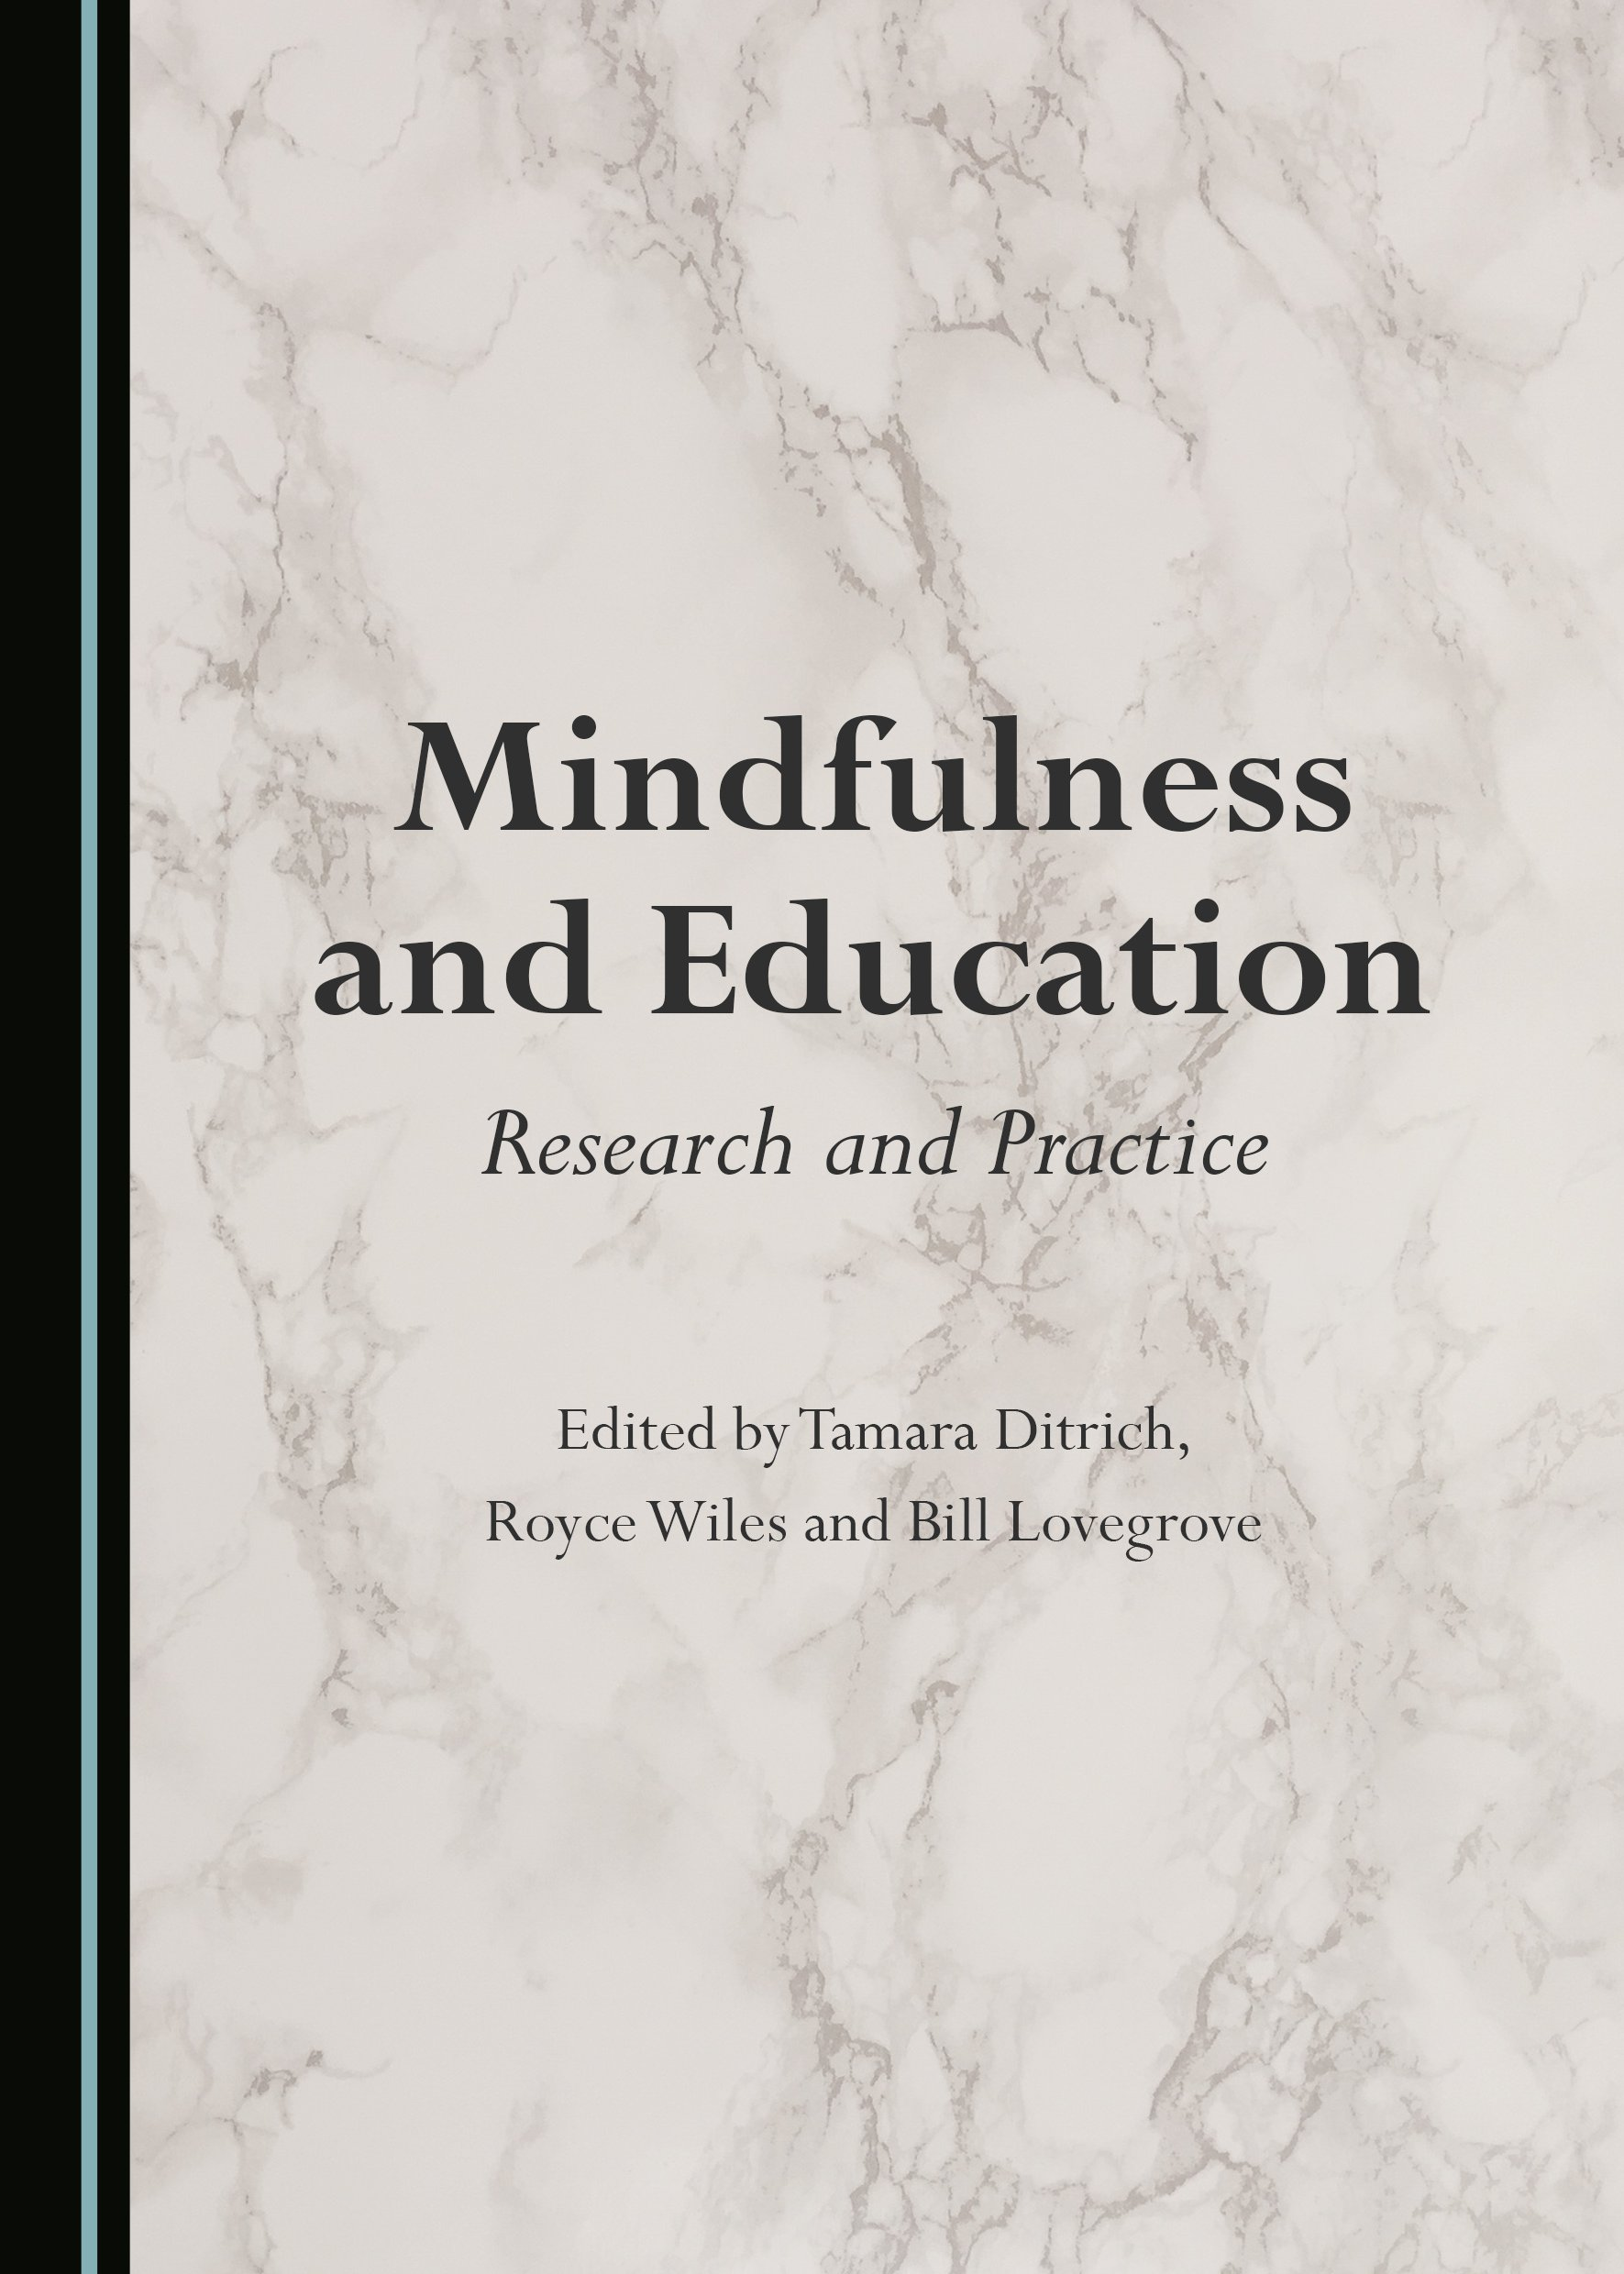 Mindfulness and Education: Research and Practice